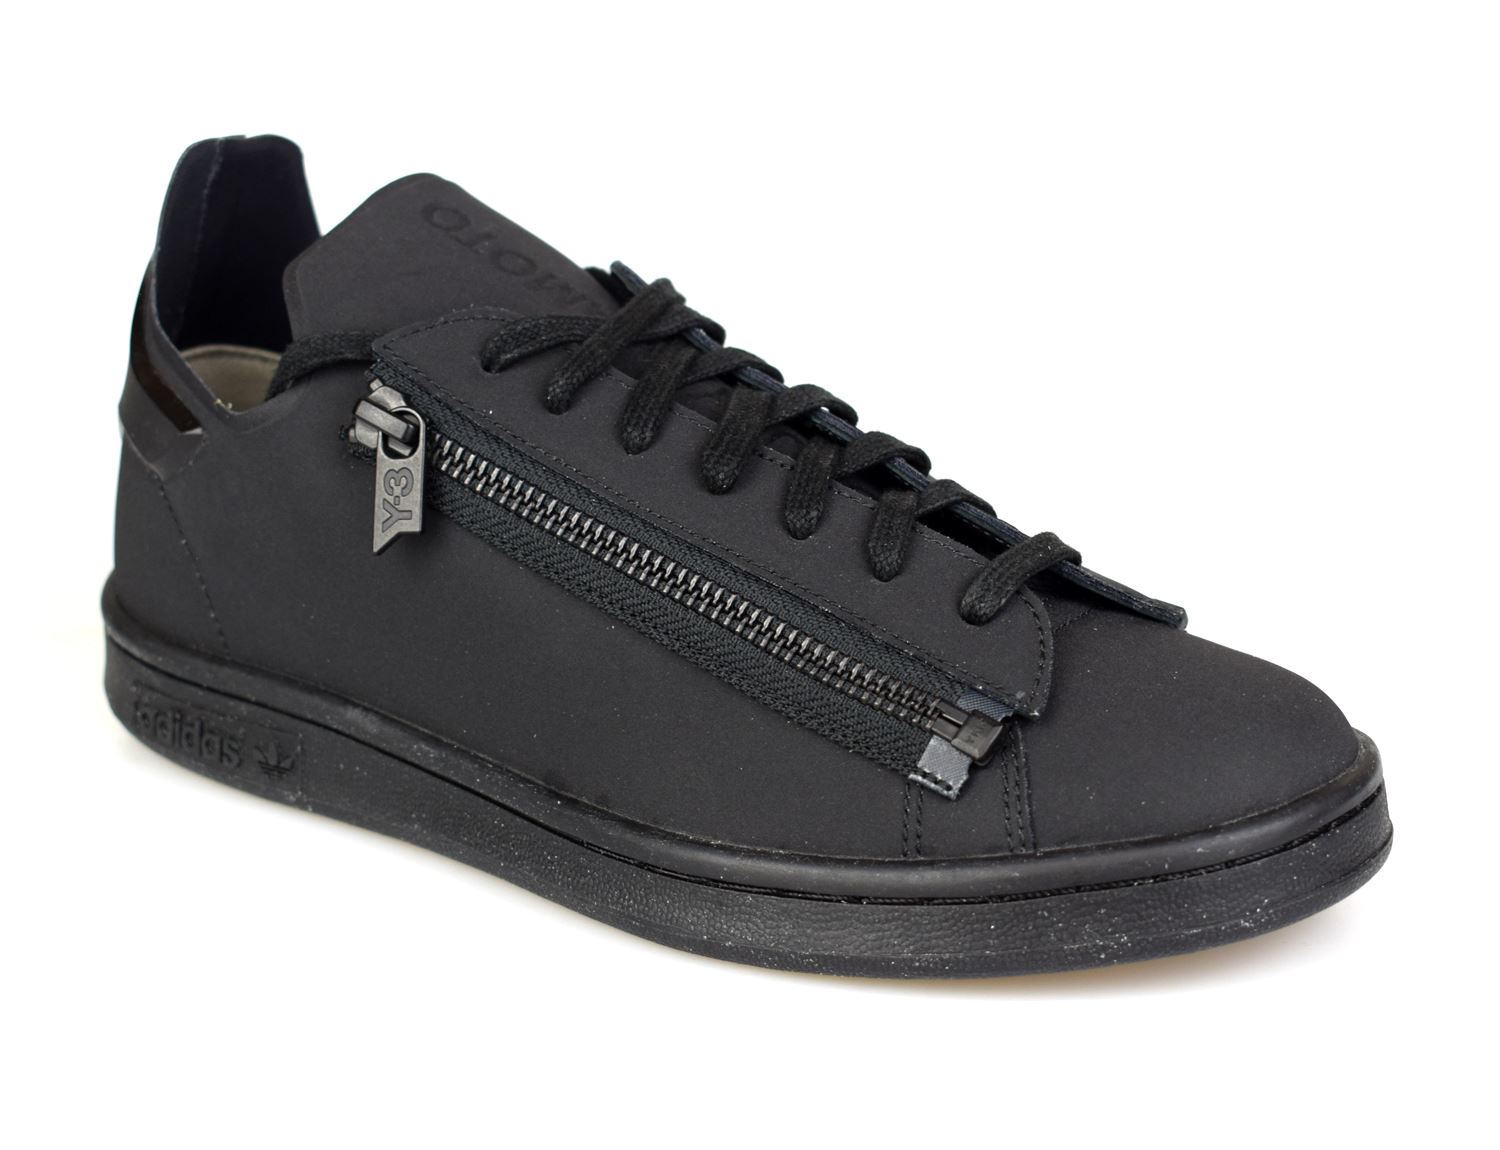 brand new c0096 e5e03 Details about Adidas Y-3 Stan Zip Black Mens Trainers CG3207